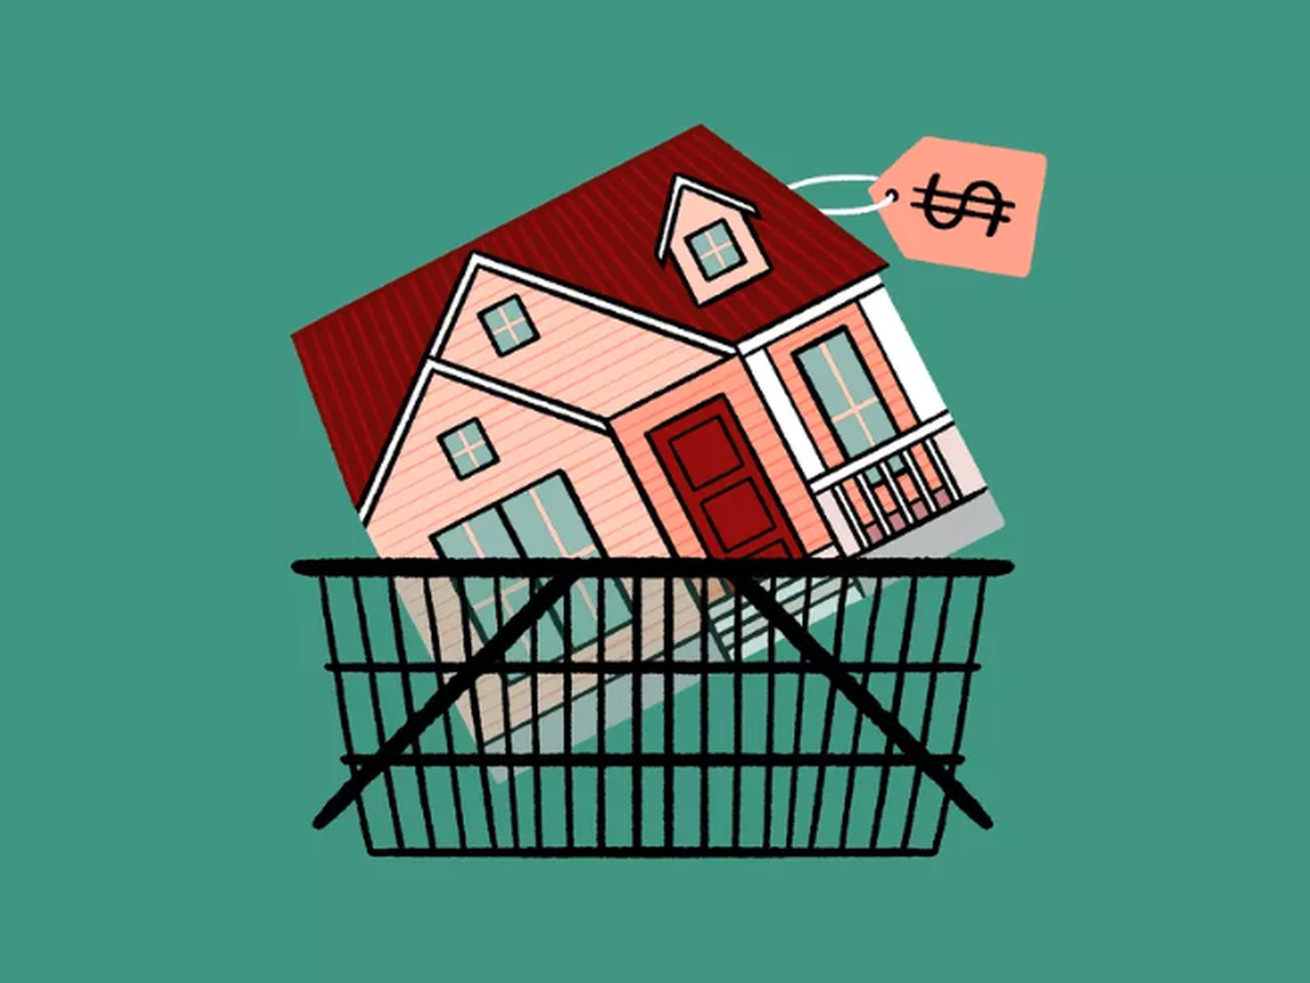 A drawing of a house in a shopping cart.